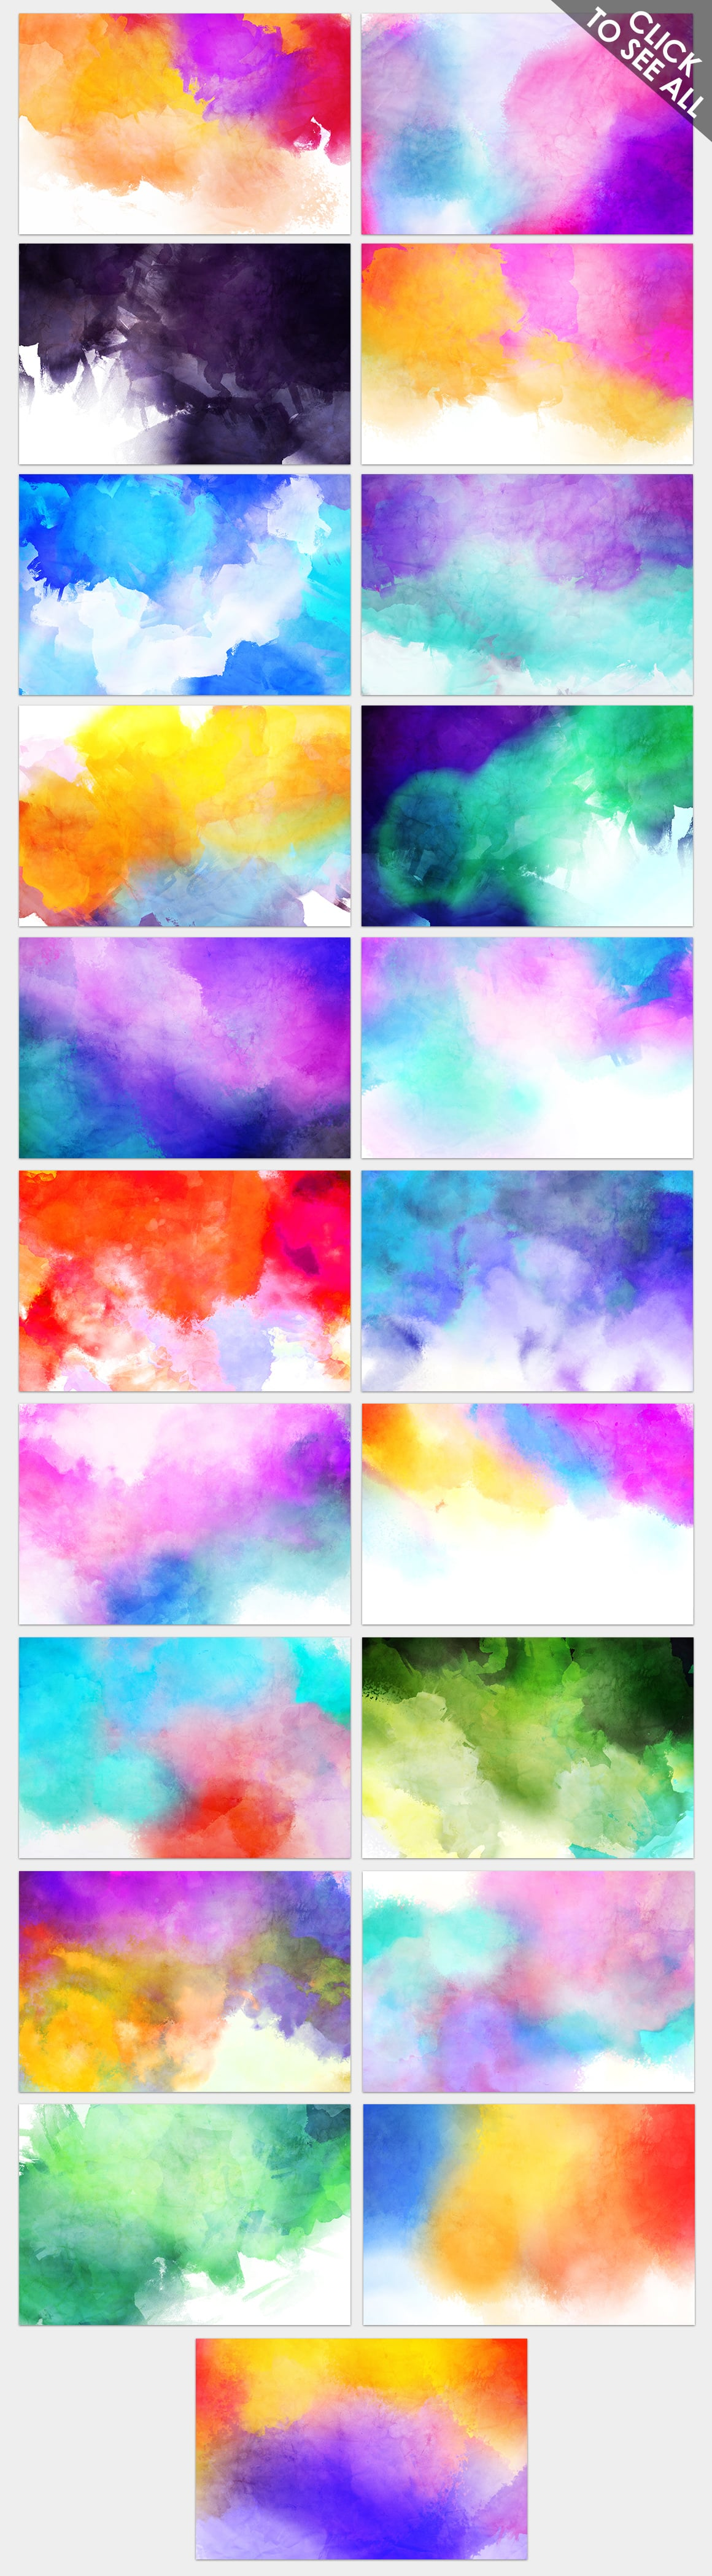 540+ Watercolor Backgrounds Bundle - 544 Items. Only $18! - artisticr backgrounds prev2 o